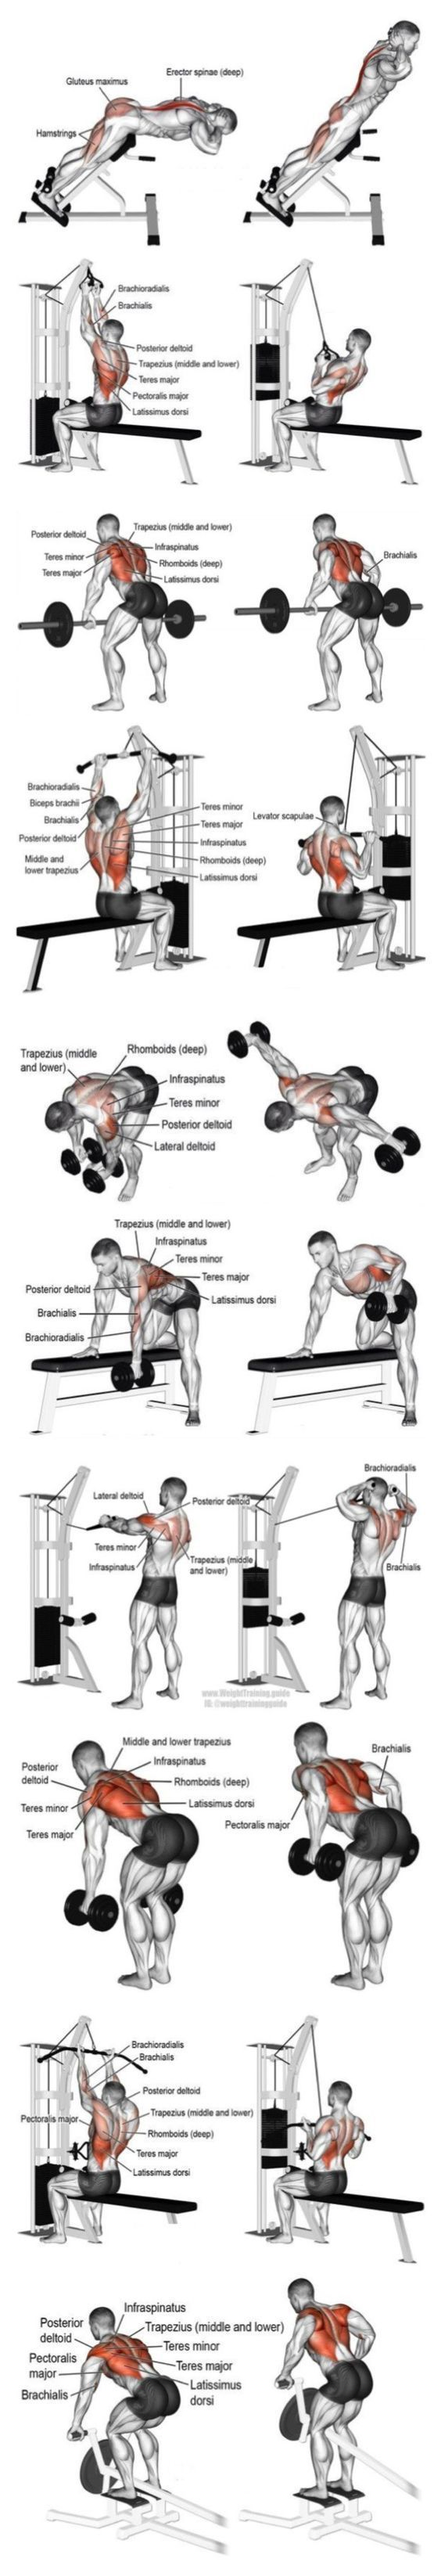 Body Building Fitness Exercises To Shape Your Mussel Bodycraft Gym Equipment Sale On Altitude Fitness Outlet Https Www Fitness Body Back Exercises Exercise